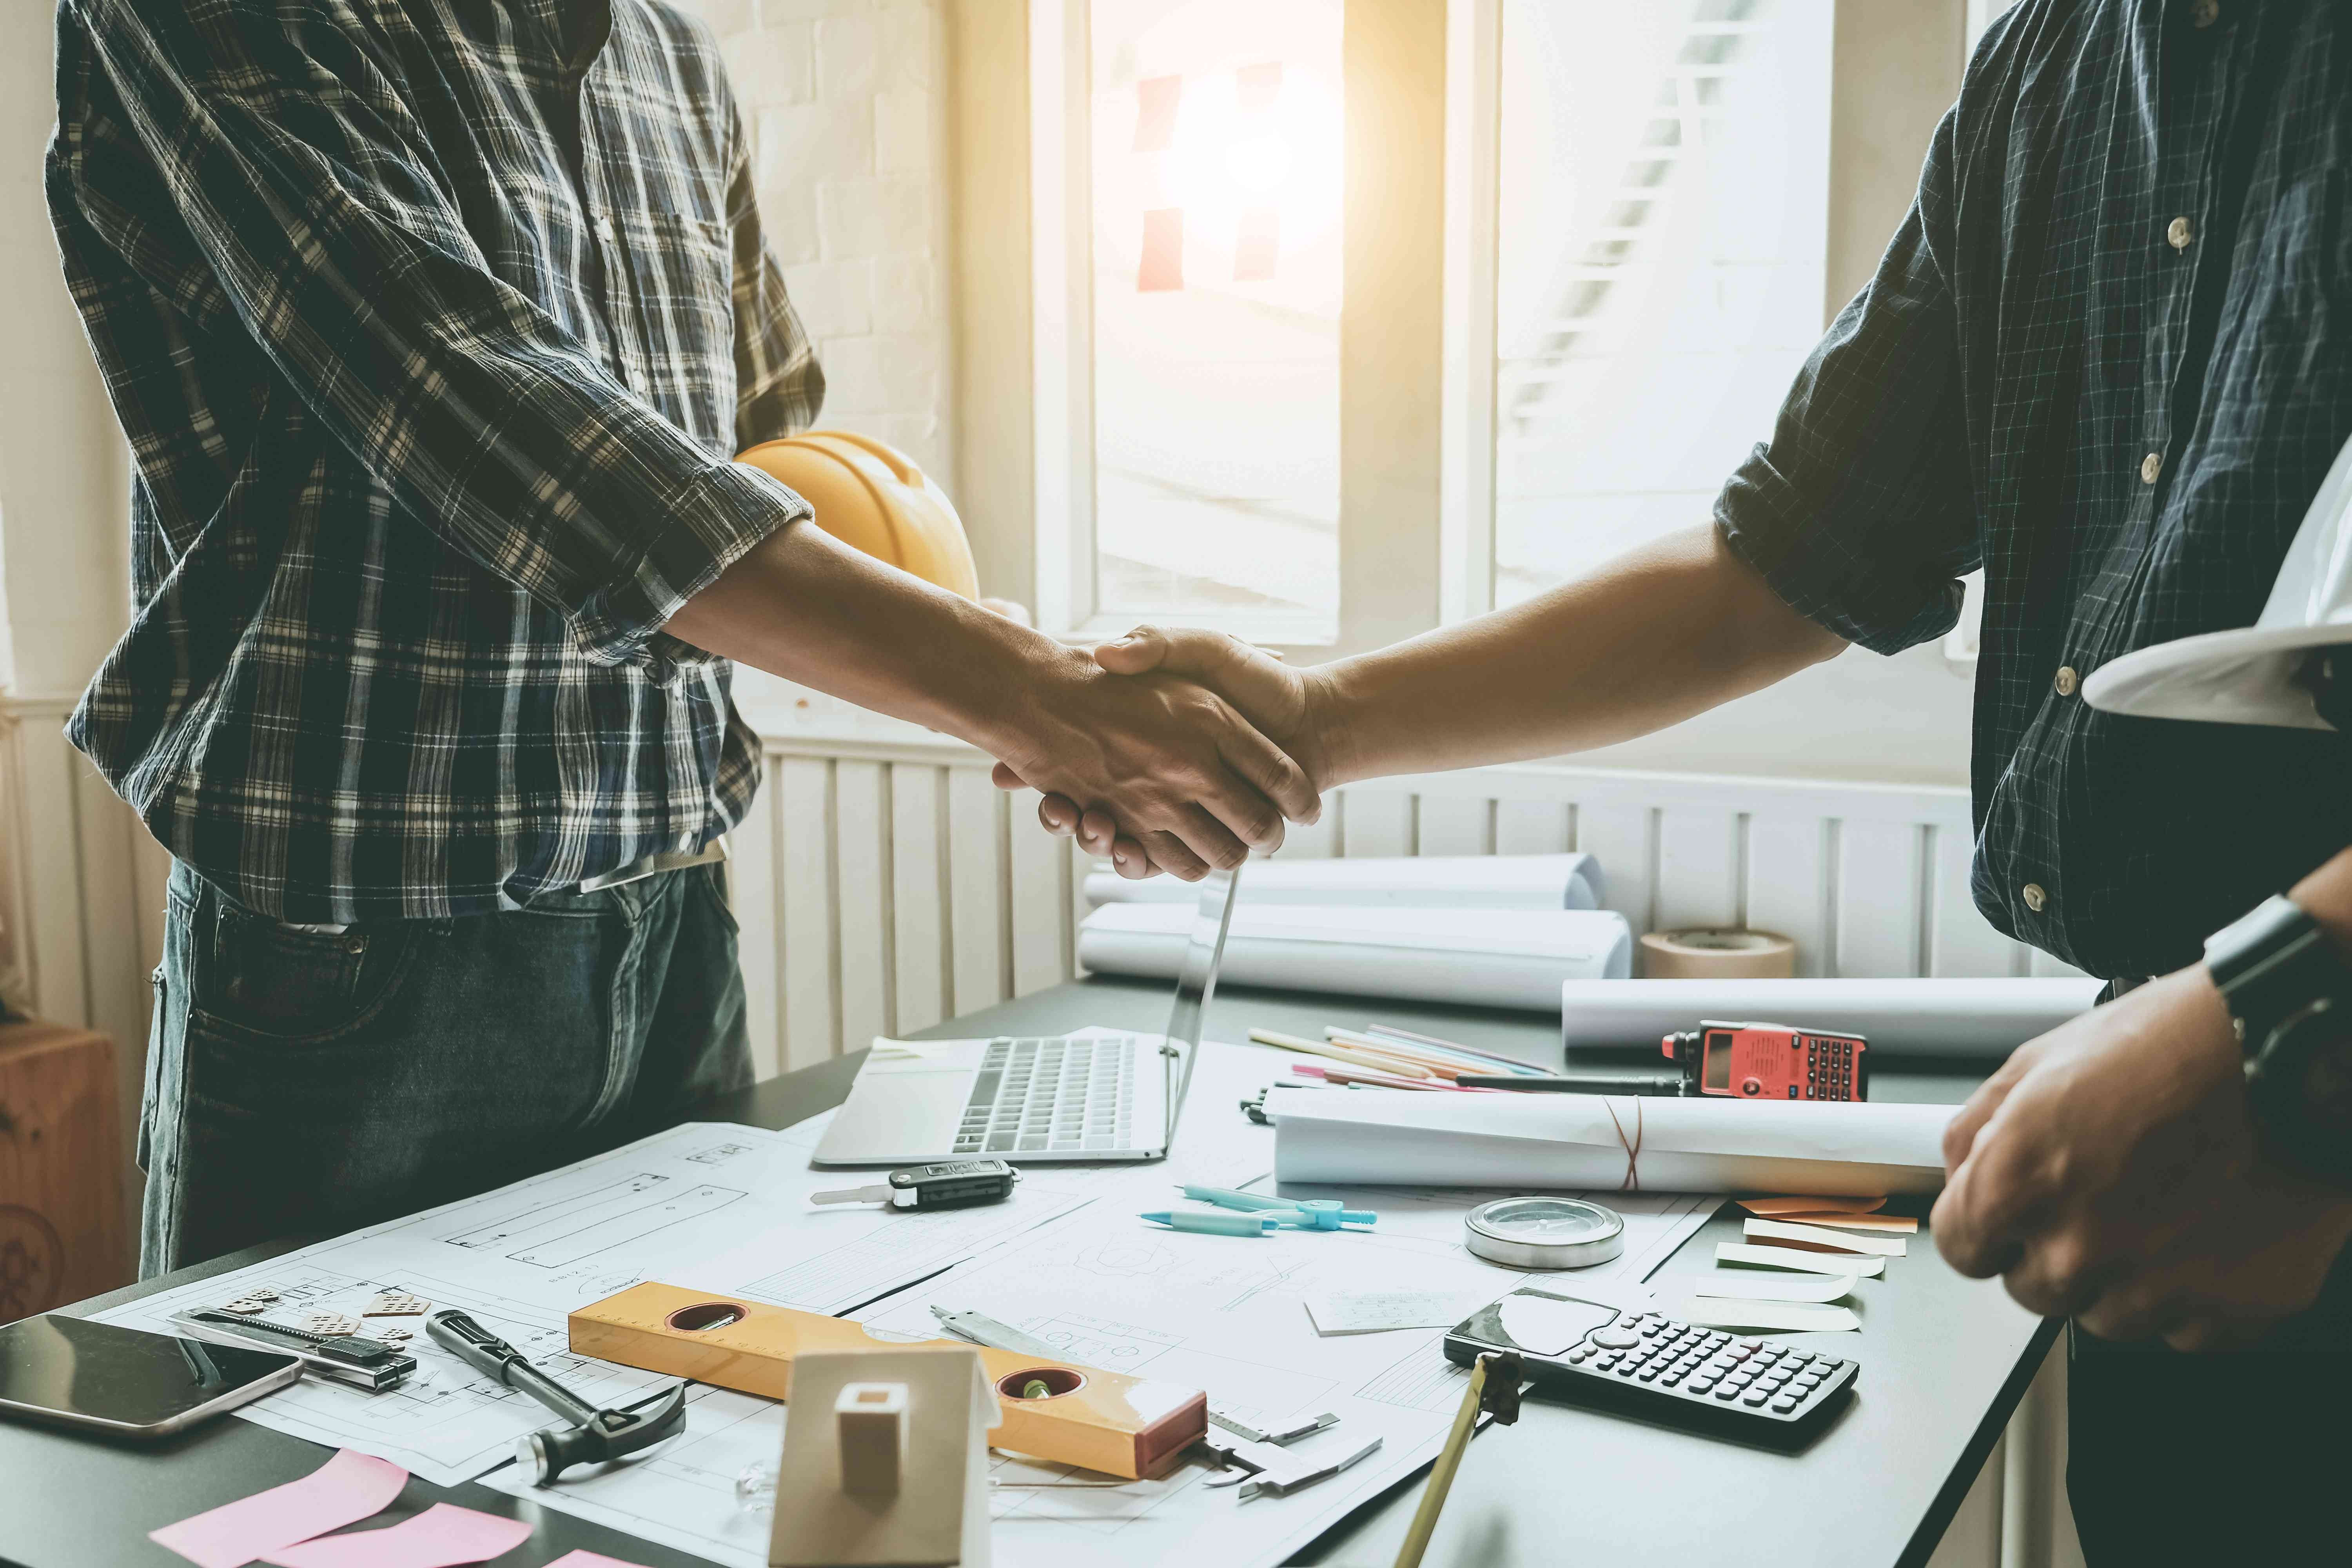 Engineers and architects handshake. Agreement and are willing to work together.